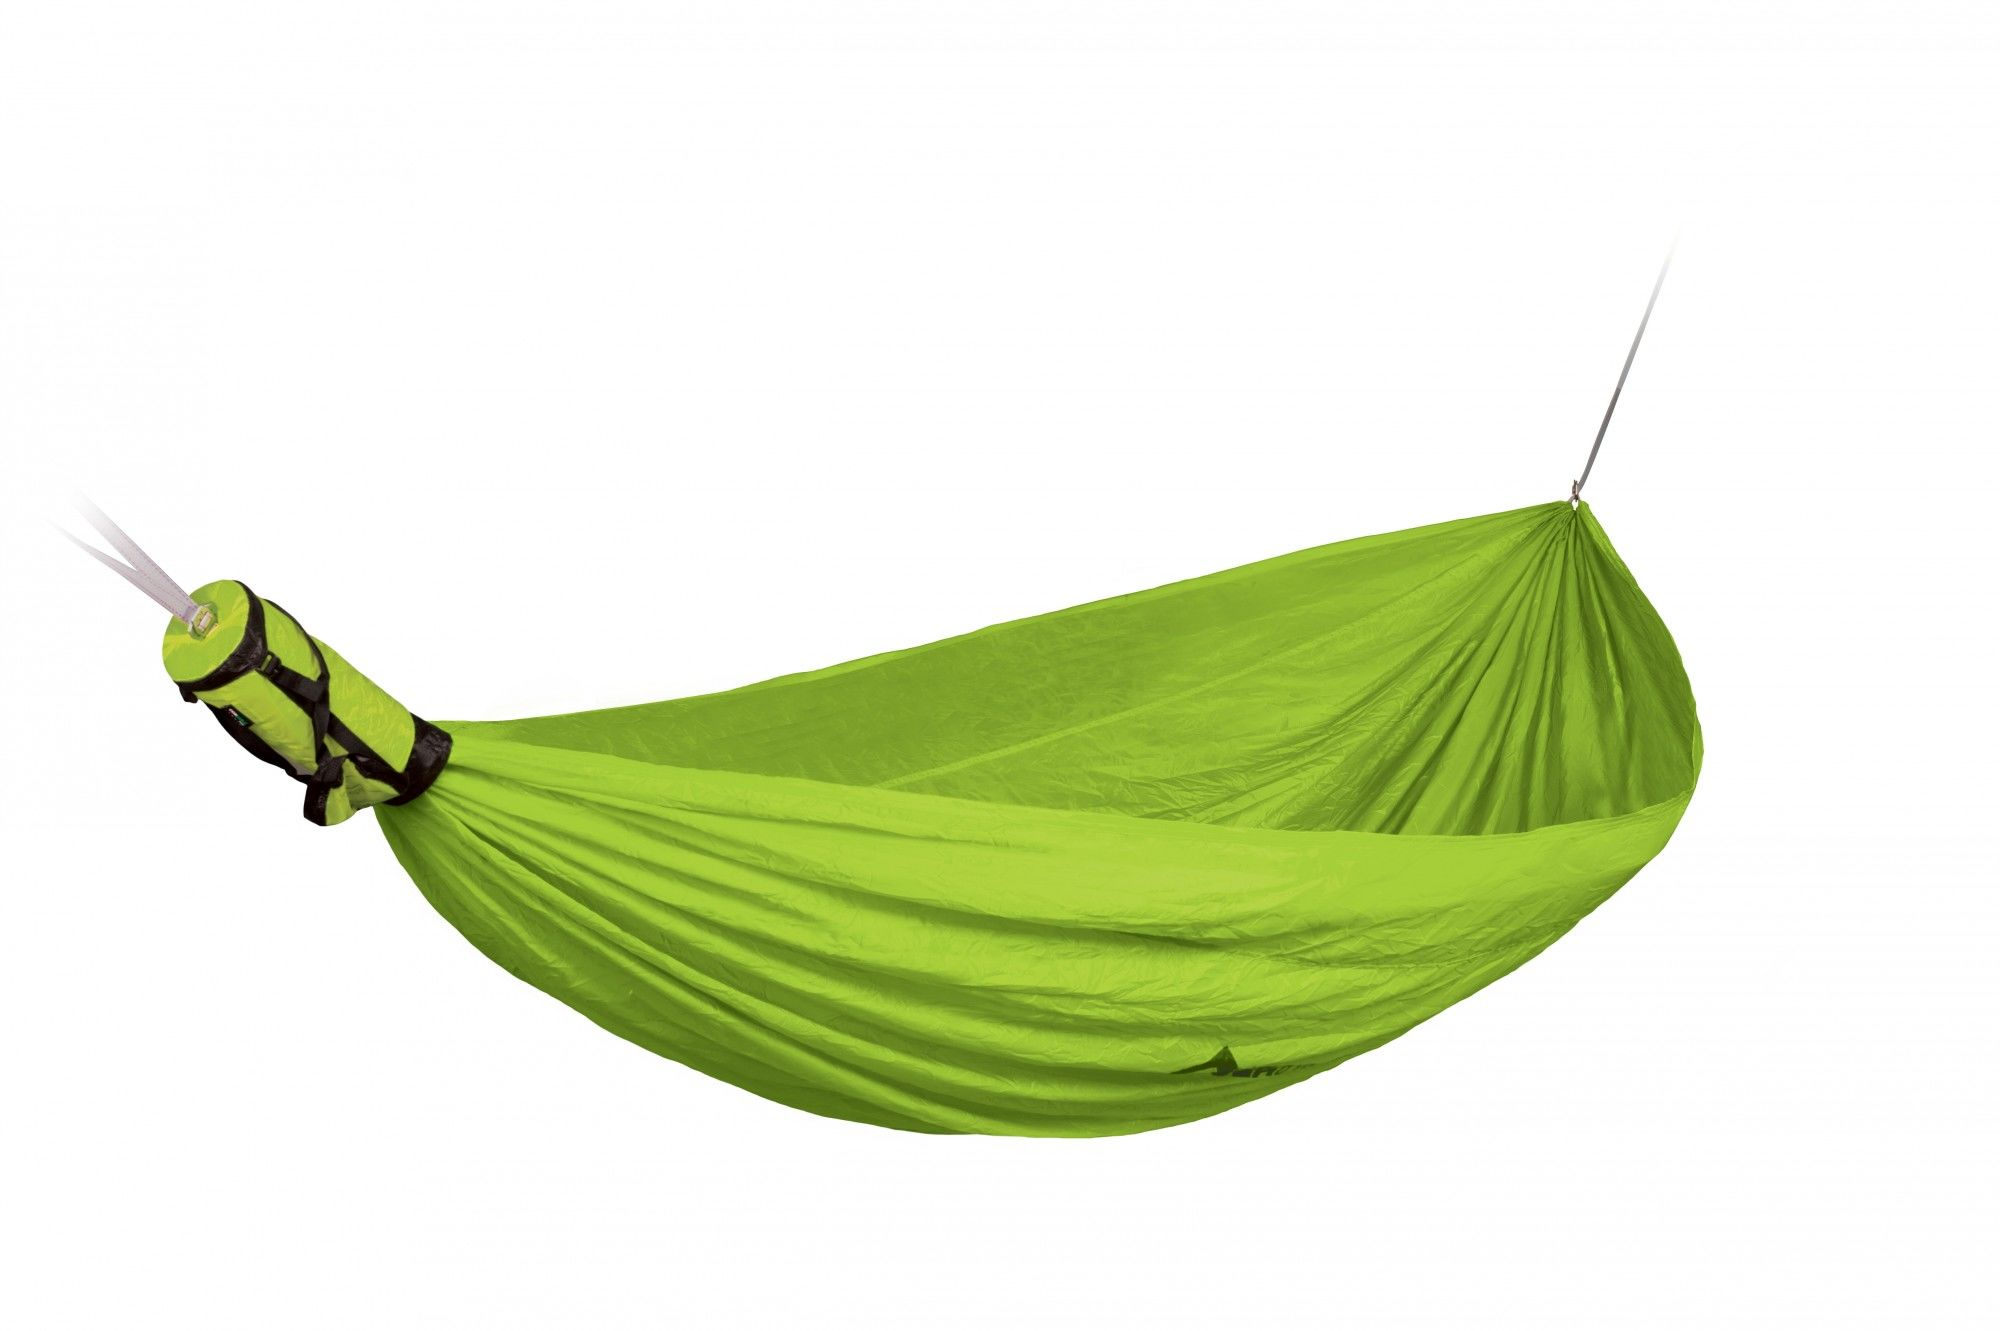 Sea to Summit Hammock Pro Double Grün, One Size -Farbe Lime, One Size